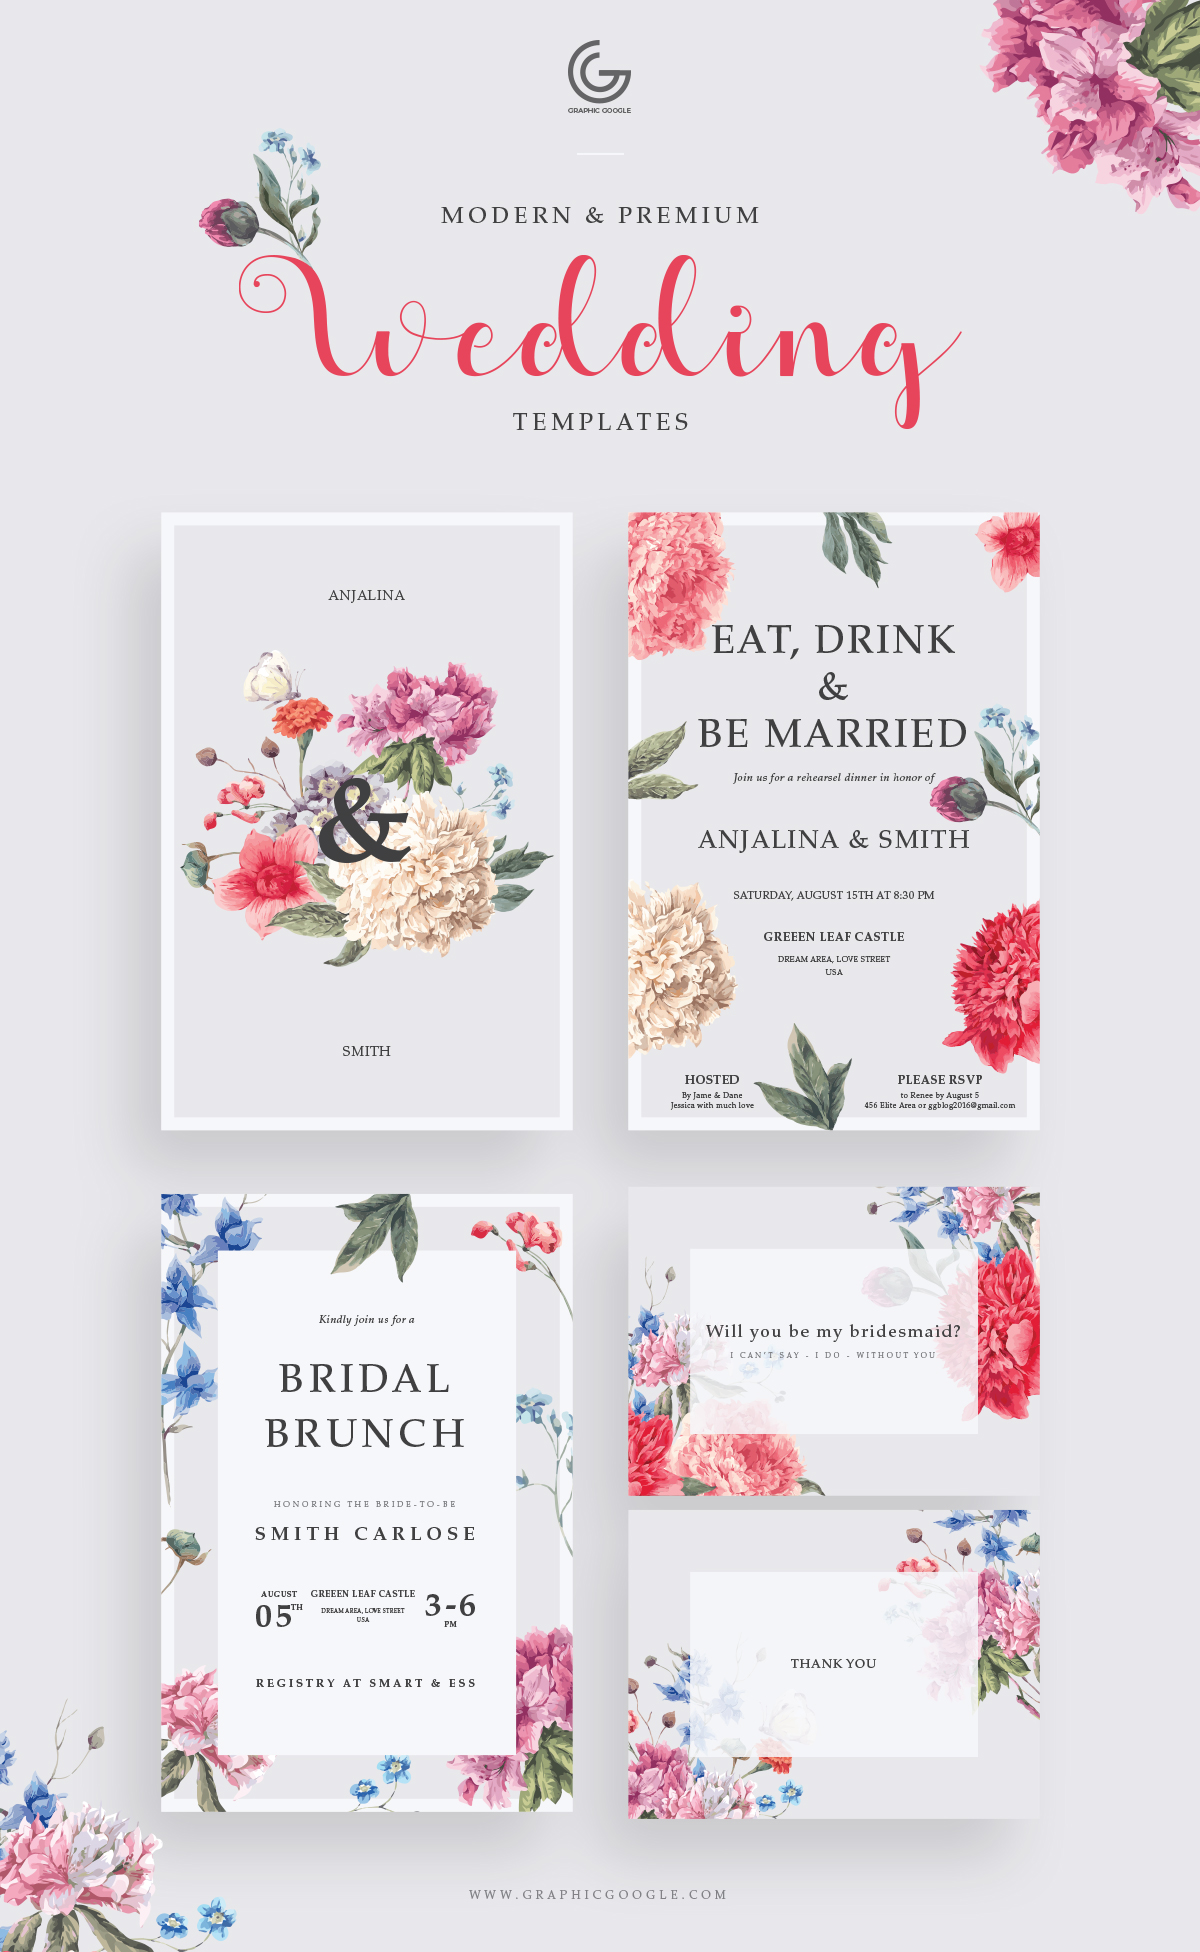 Free-Modern-&-Premium-Wedding-Invitation-Templates-2018